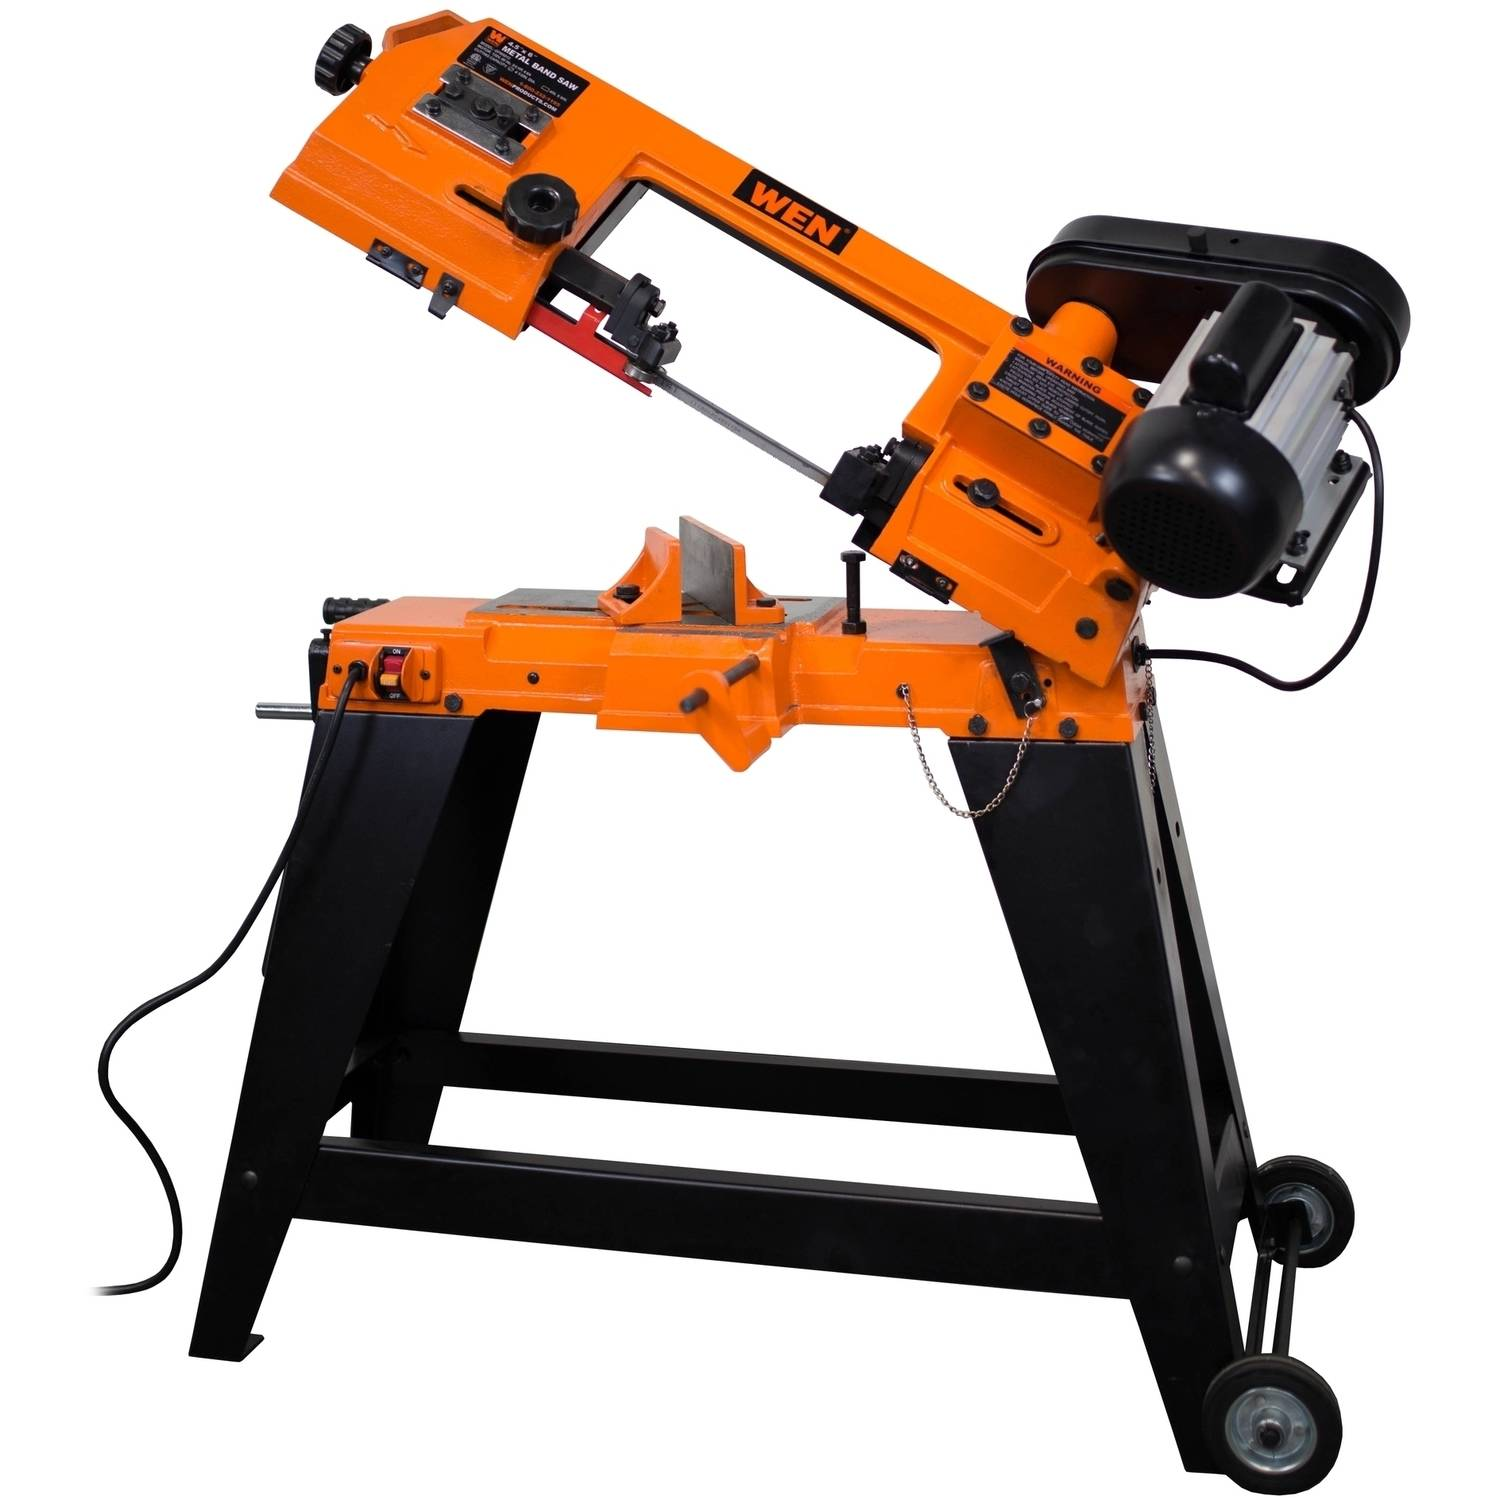 WEN 4-Inch X 6-Inch Metal-Cutting Band Saw With Stand